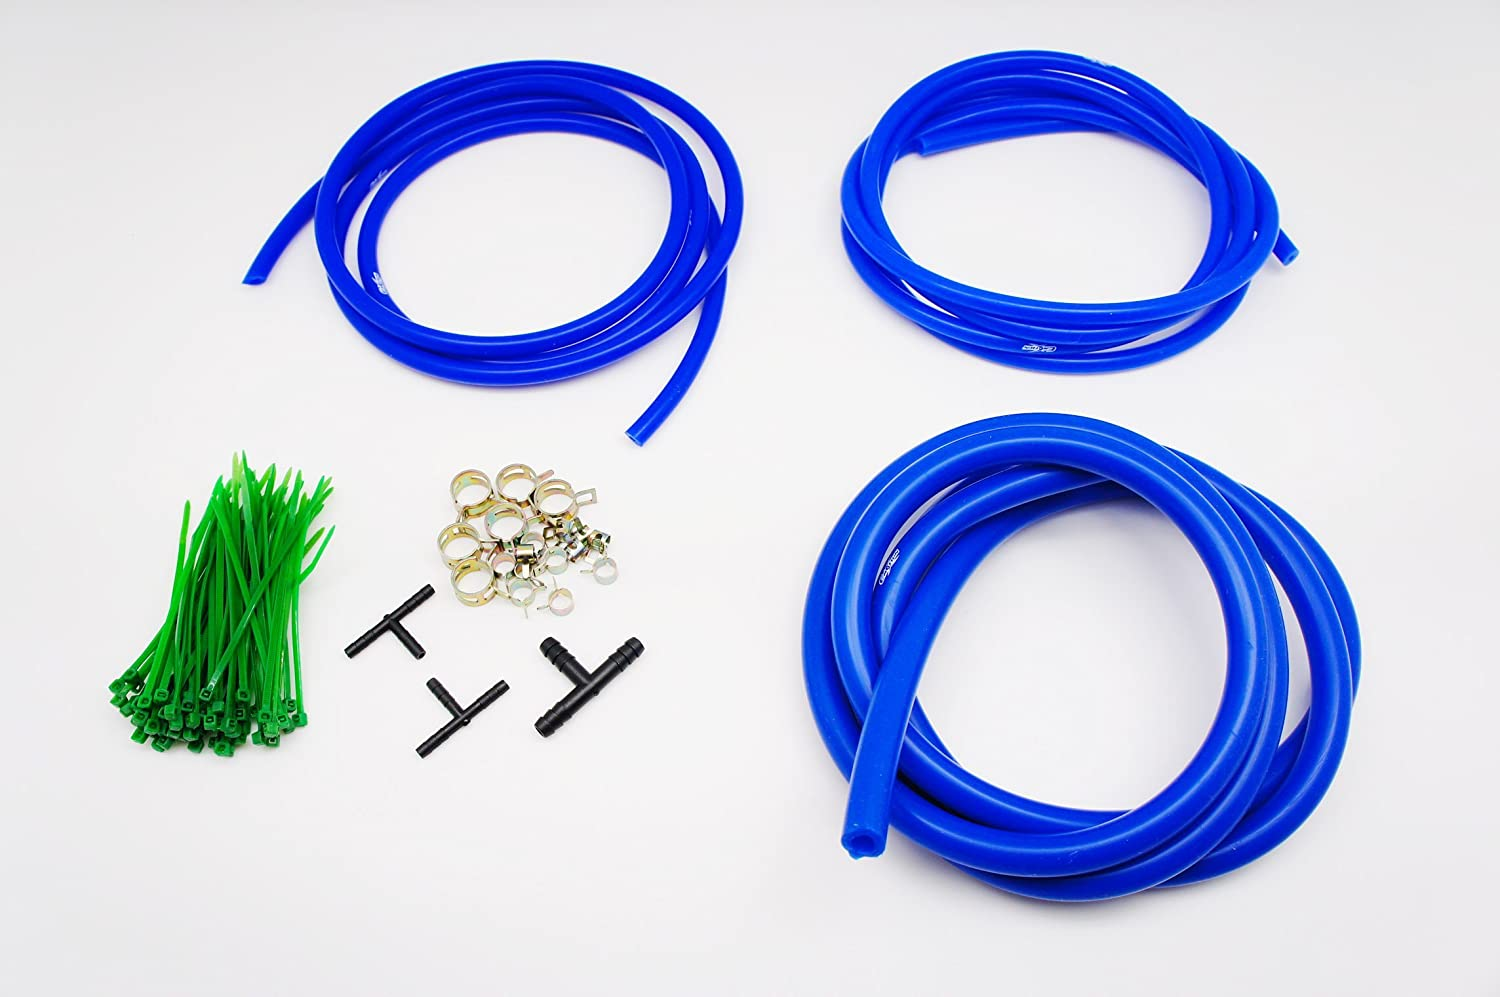 Autobahn88 Engine Room Silicone Vacuum Hose Dress Up DIY Kit, Fit All Models of Ford (Blue)